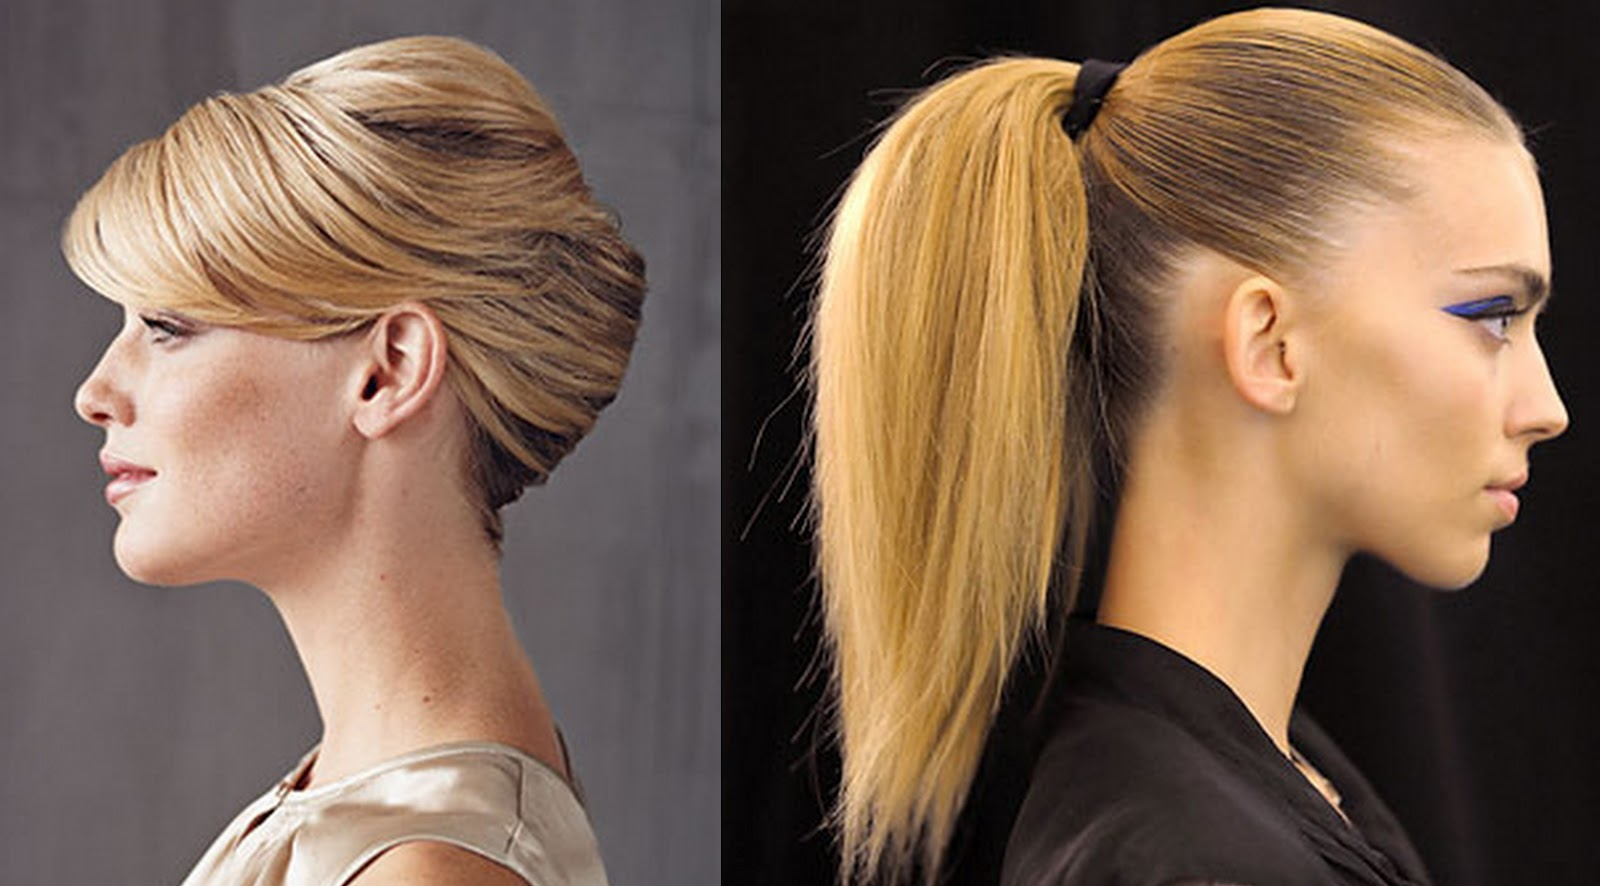 Hairstyles For Short Hair For Job Interview : Your hairstyle should be conservative as well. If itis necessary ...